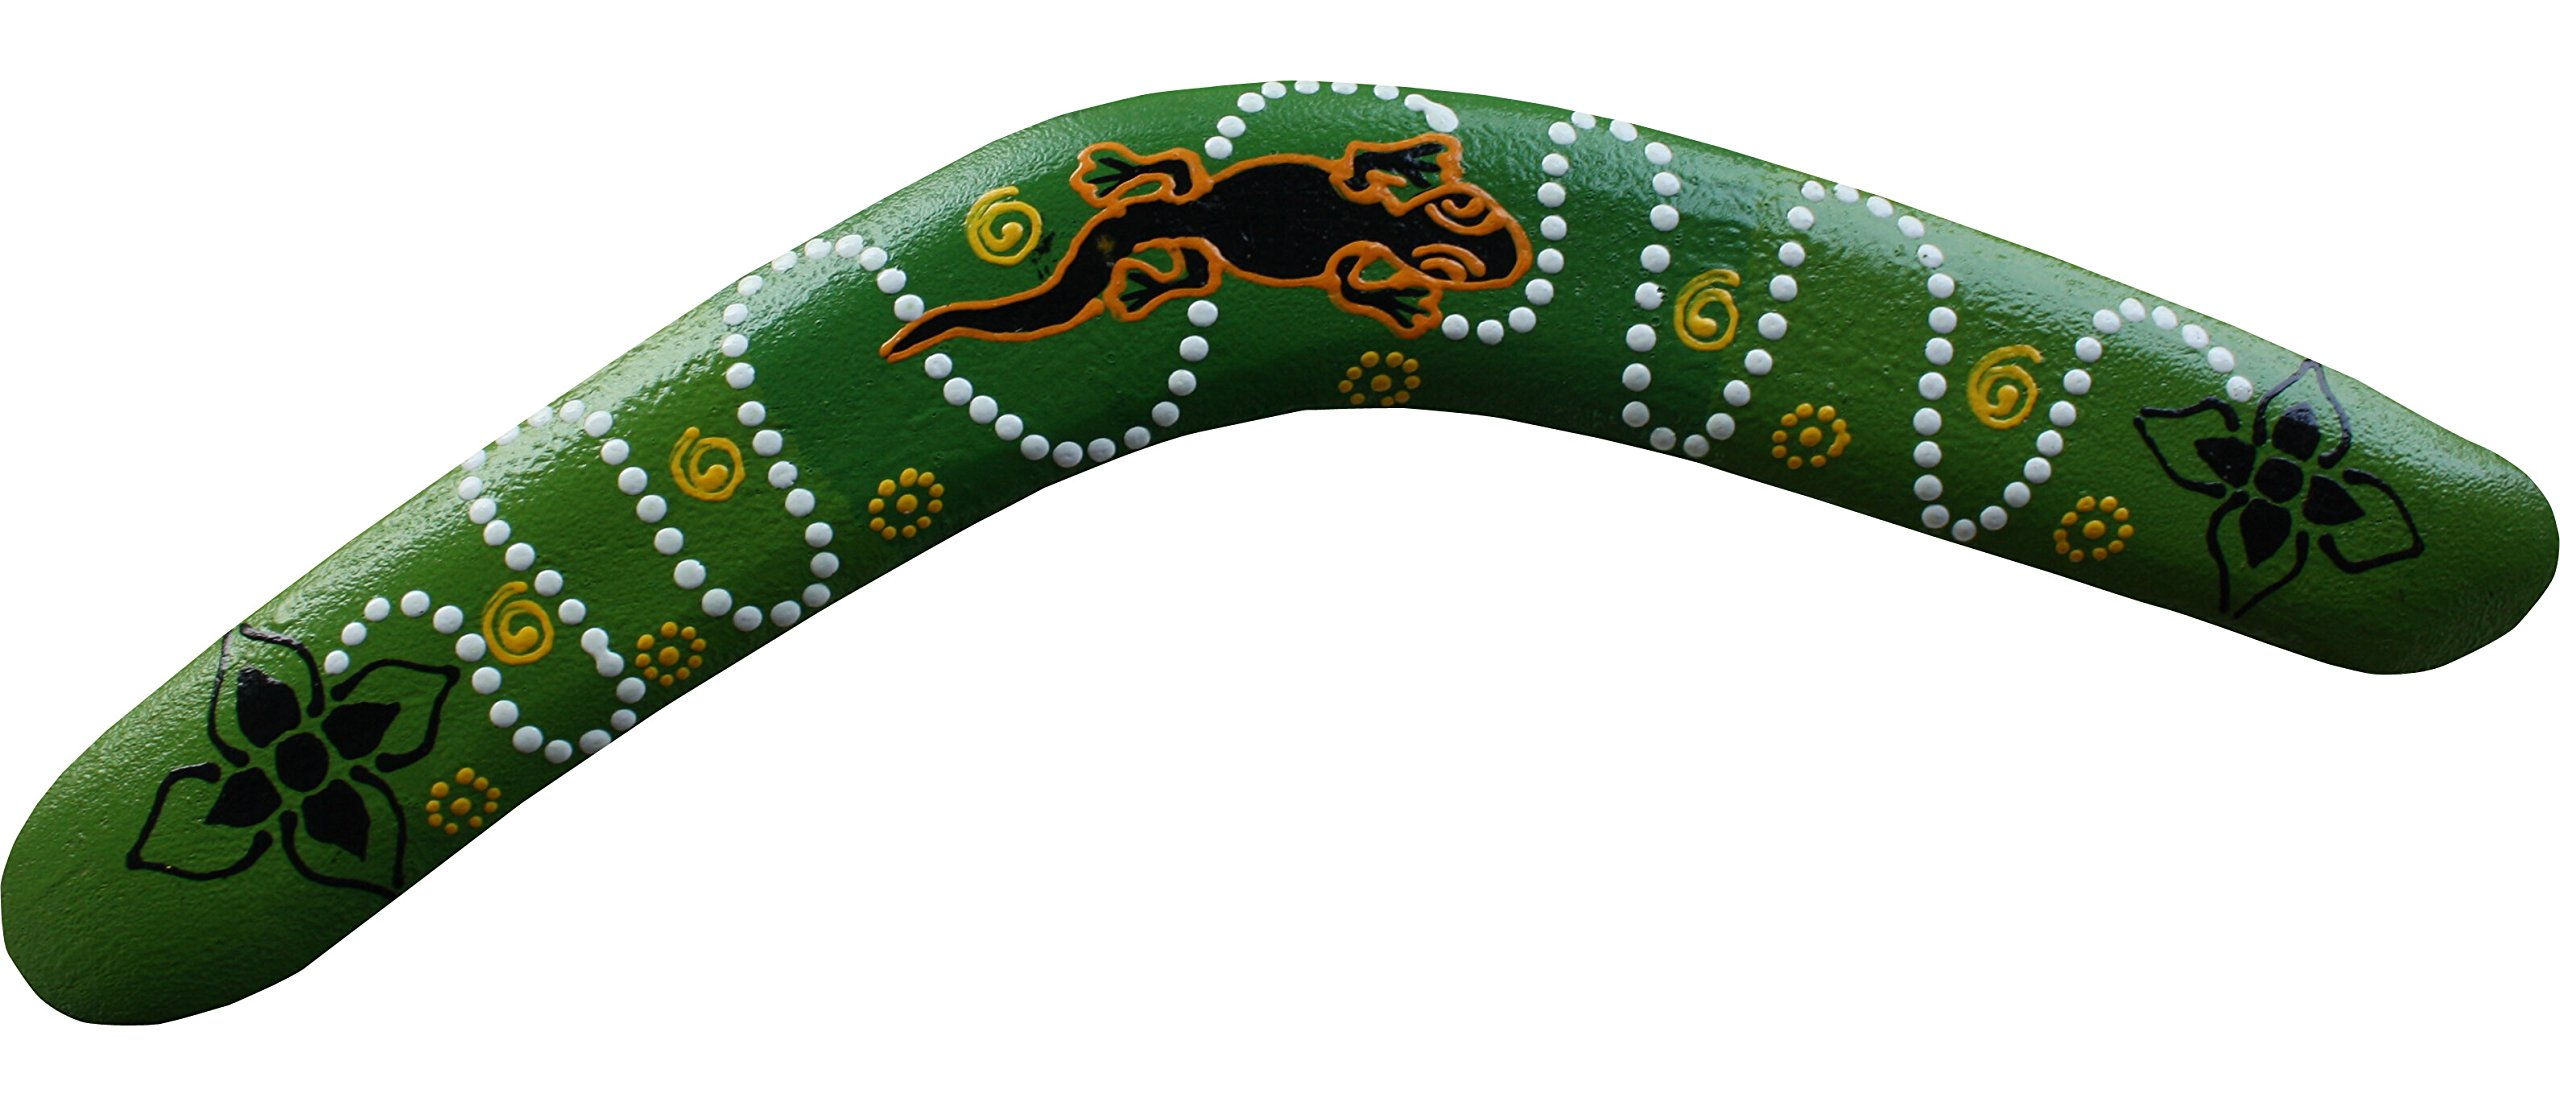 Raan Pah Muang Brand Thai Made Australian Aboriginal Art Decorative Boomerang #88304 by Raan Pah Muang